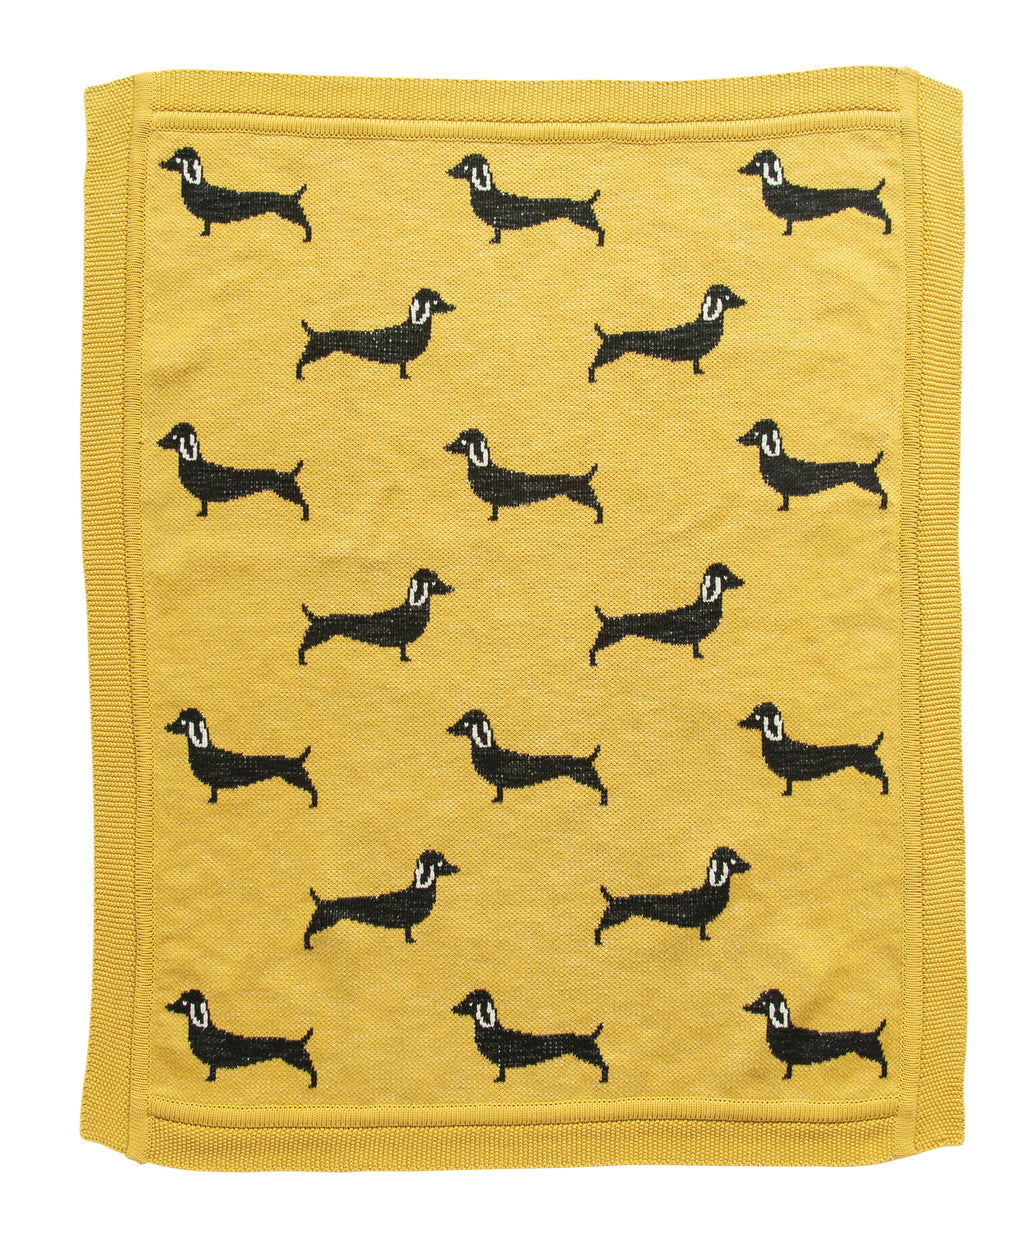 Chartreuse Cotton Knit Baby Blanket with Black Dachshund Dogs